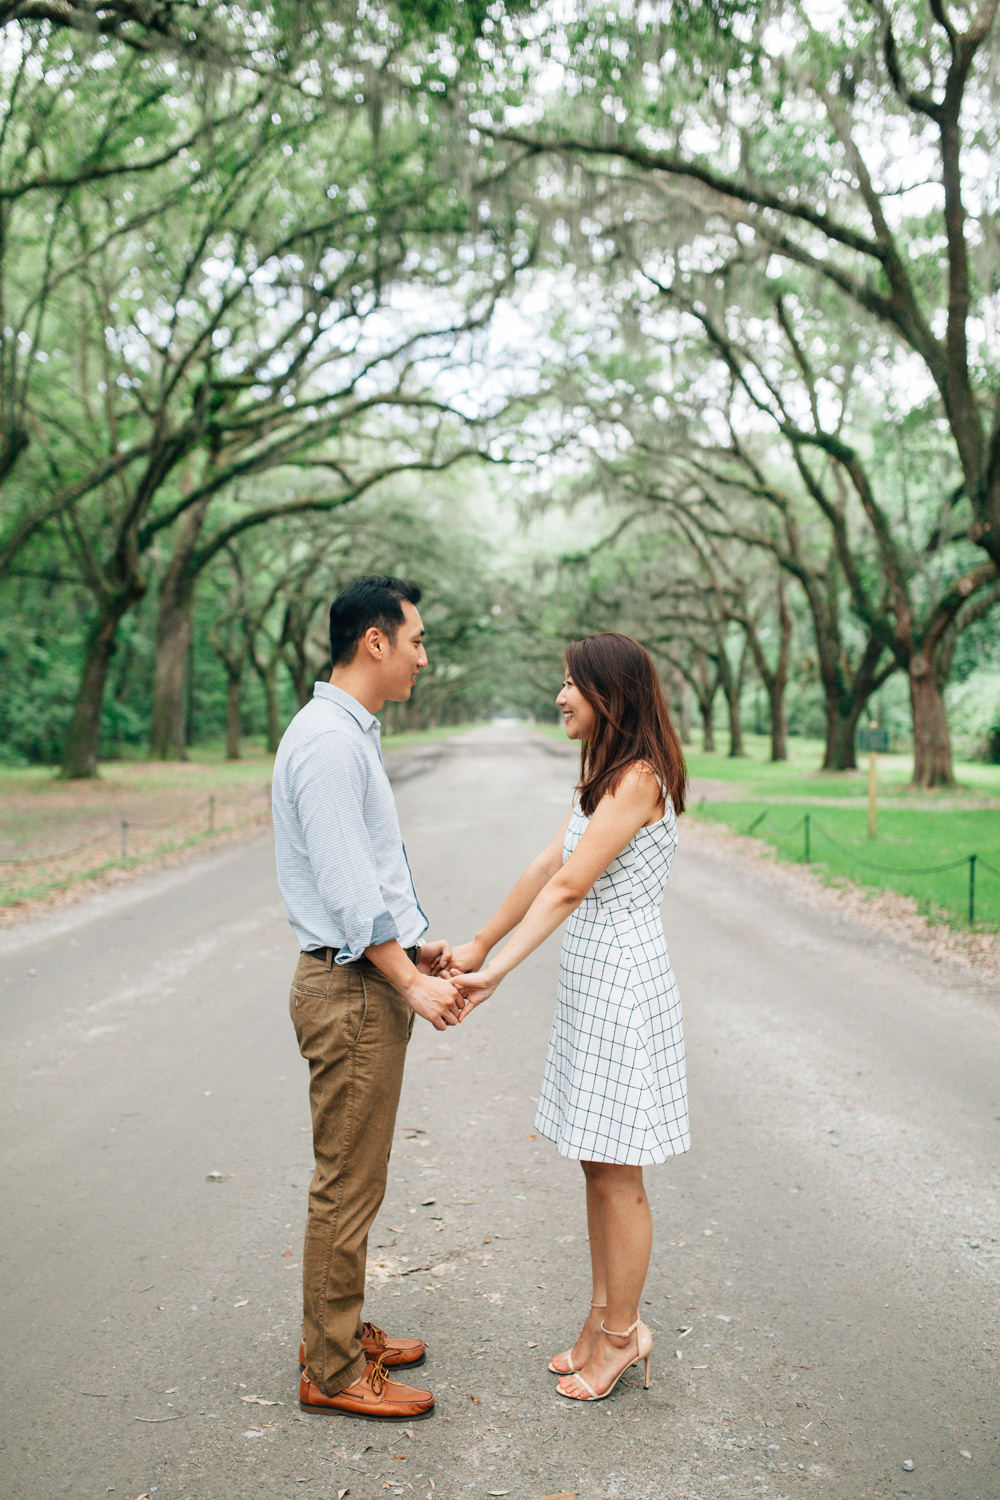 savannahengagement-2019.jpg